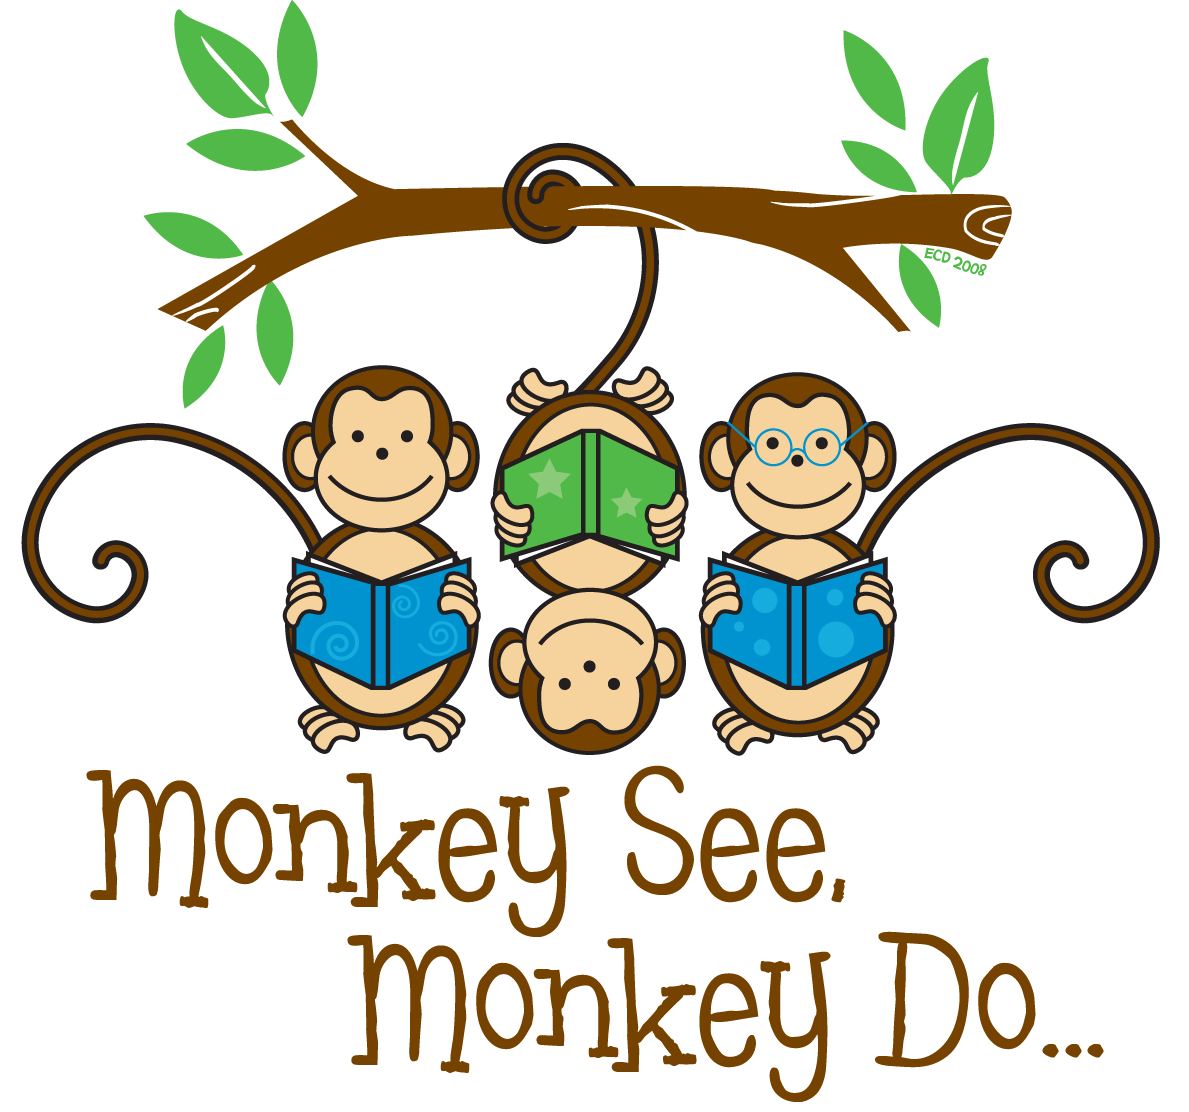 an analysis of the well known saying monkey see monkey do